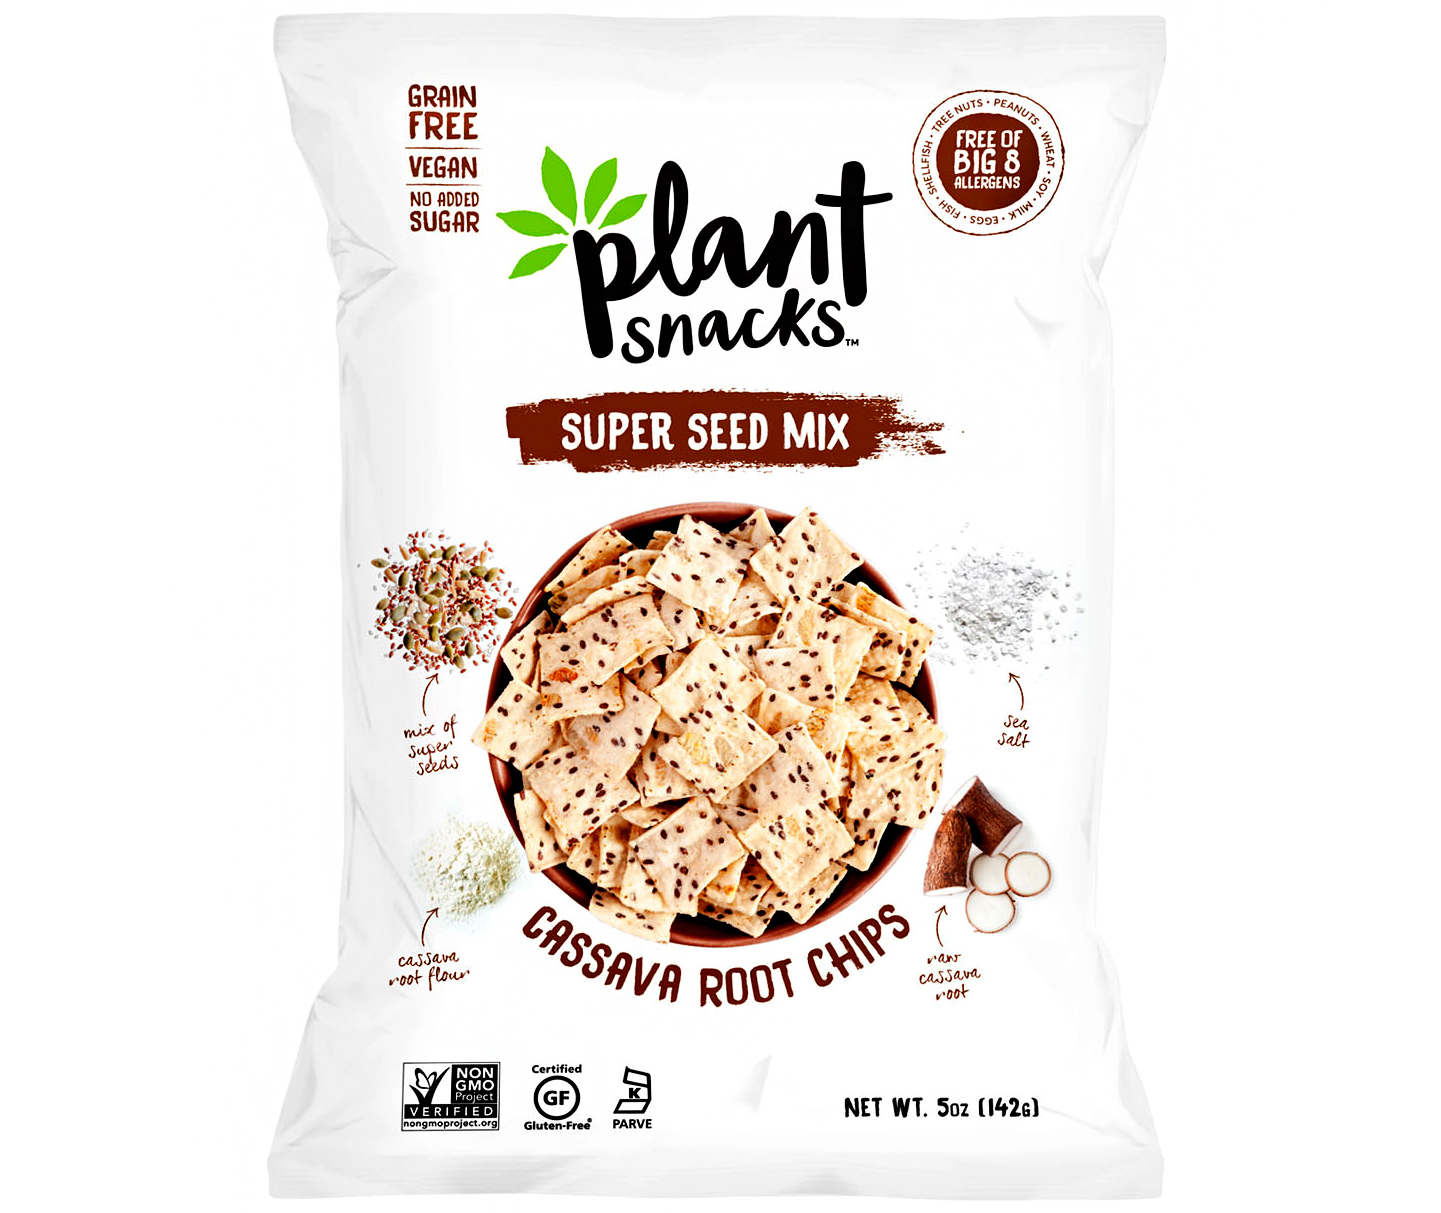 plant snacks super seed mix cassava root chips